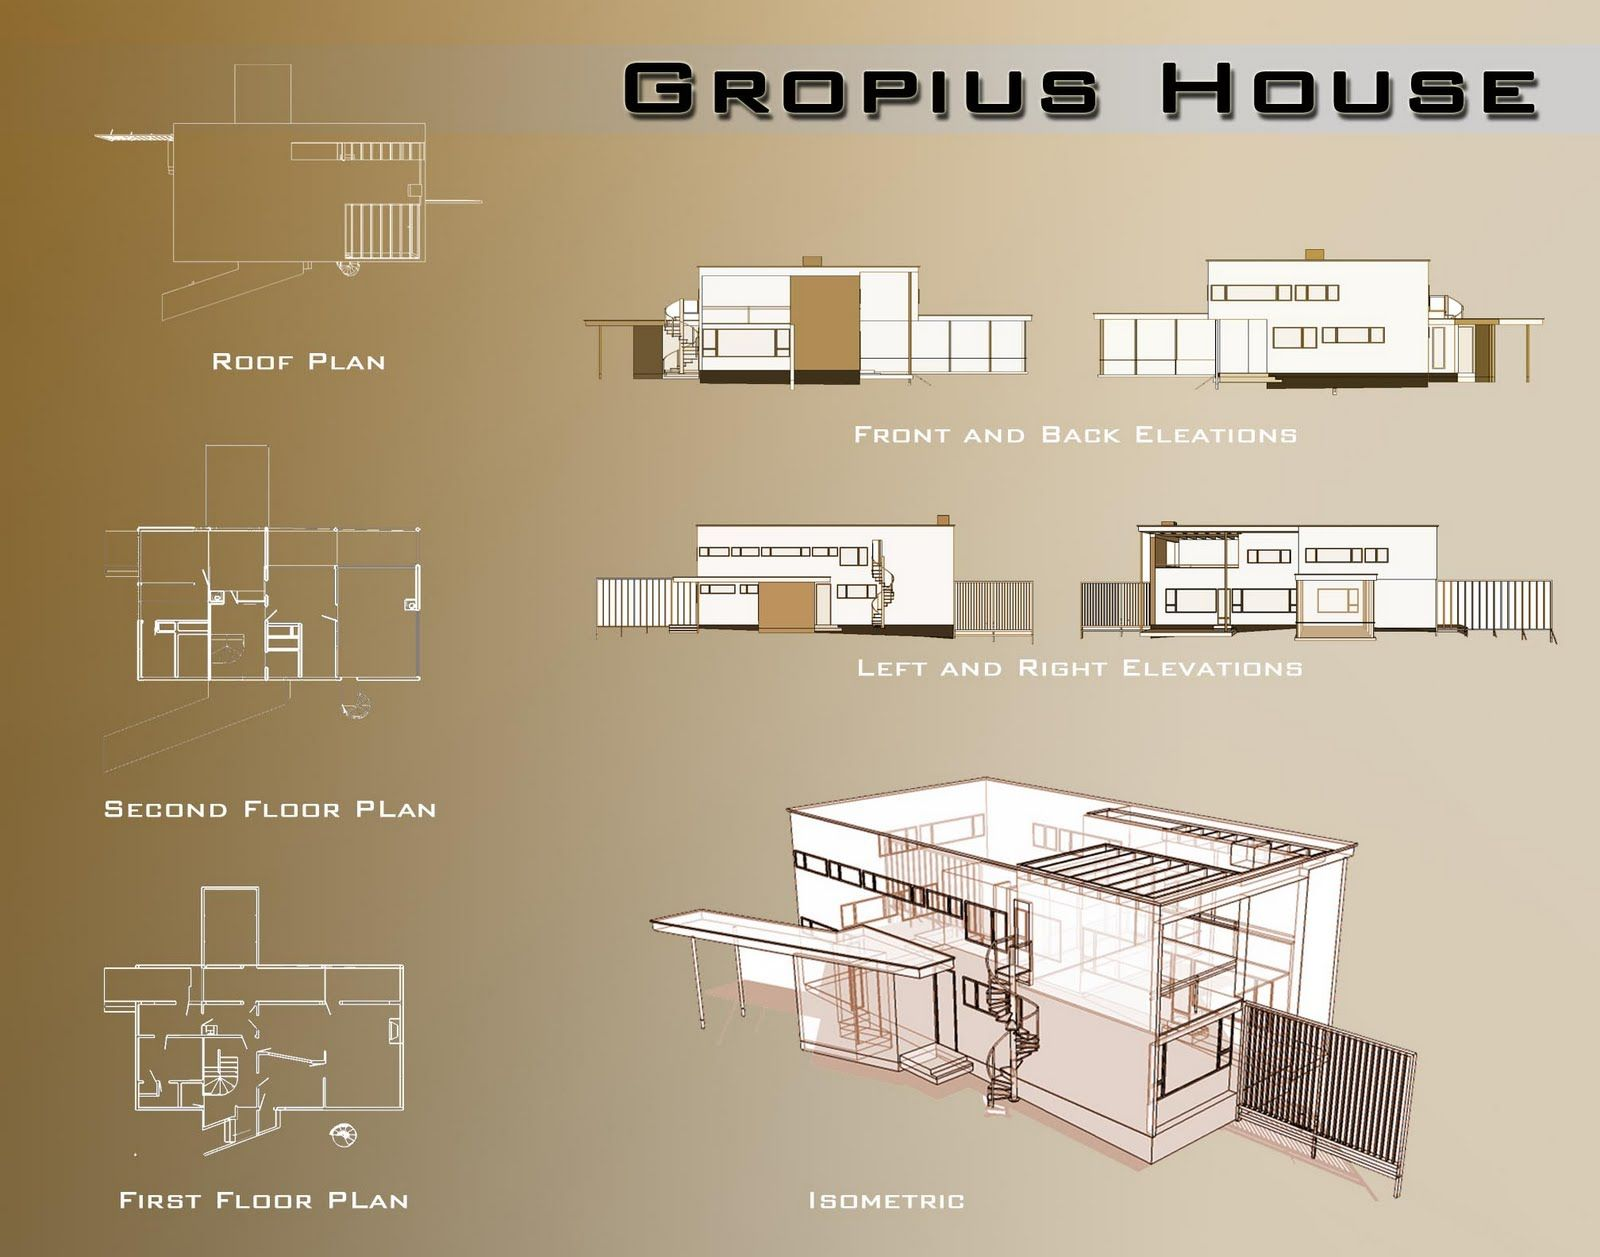 Architectural Drawings additionally Architectural Background Part Of Architectural Project Architectural Plan Technical Project Drawing Technical Letters Architecture Planning On Paper Construction Plan Vector 4696547 as well Watch furthermore Le Corbusier At in addition frankbetzhouseplans. on modern architectural drawings houses